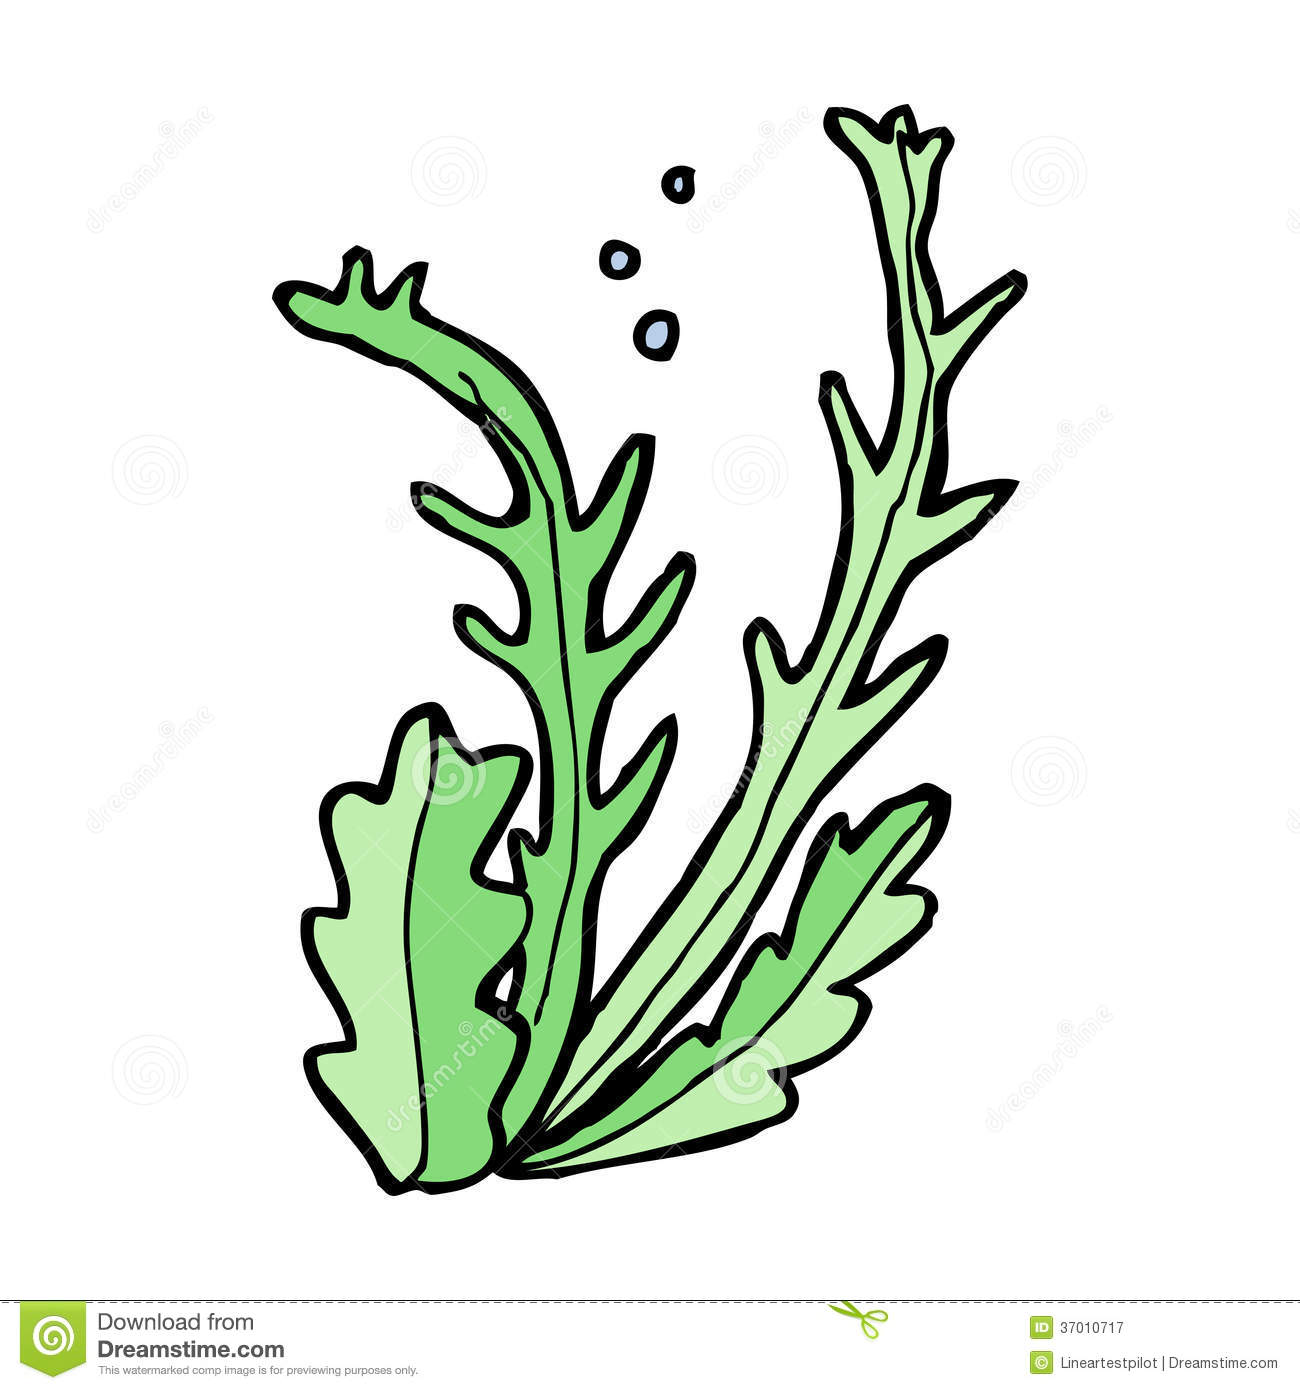 Algae clipart animated Cartoon web Pinterest Google haku